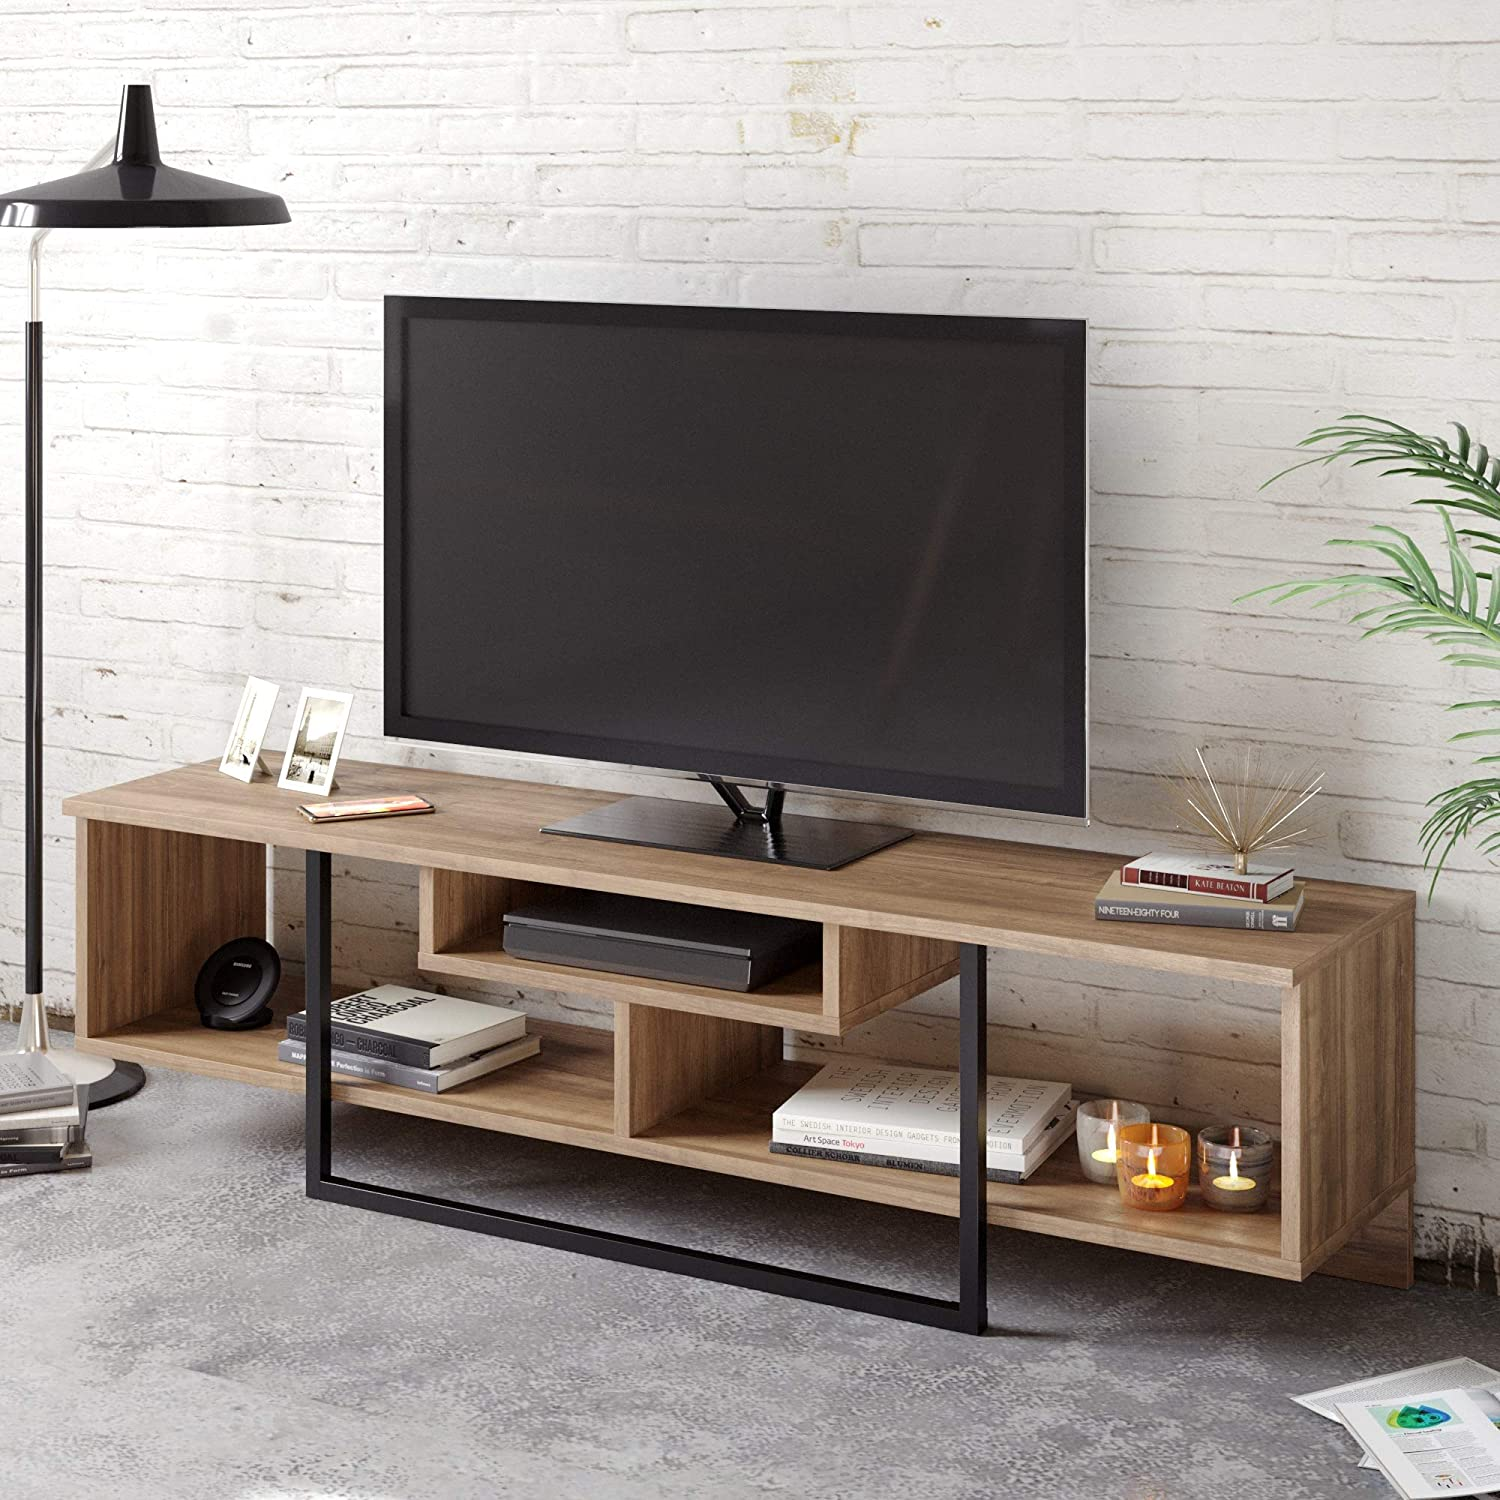 Decorotika Asal 150 Cm Wide Tv Unit Media Console For Tvs Up To 65 Inch Walnut And Black Amazon Co Uk Kitchen Home